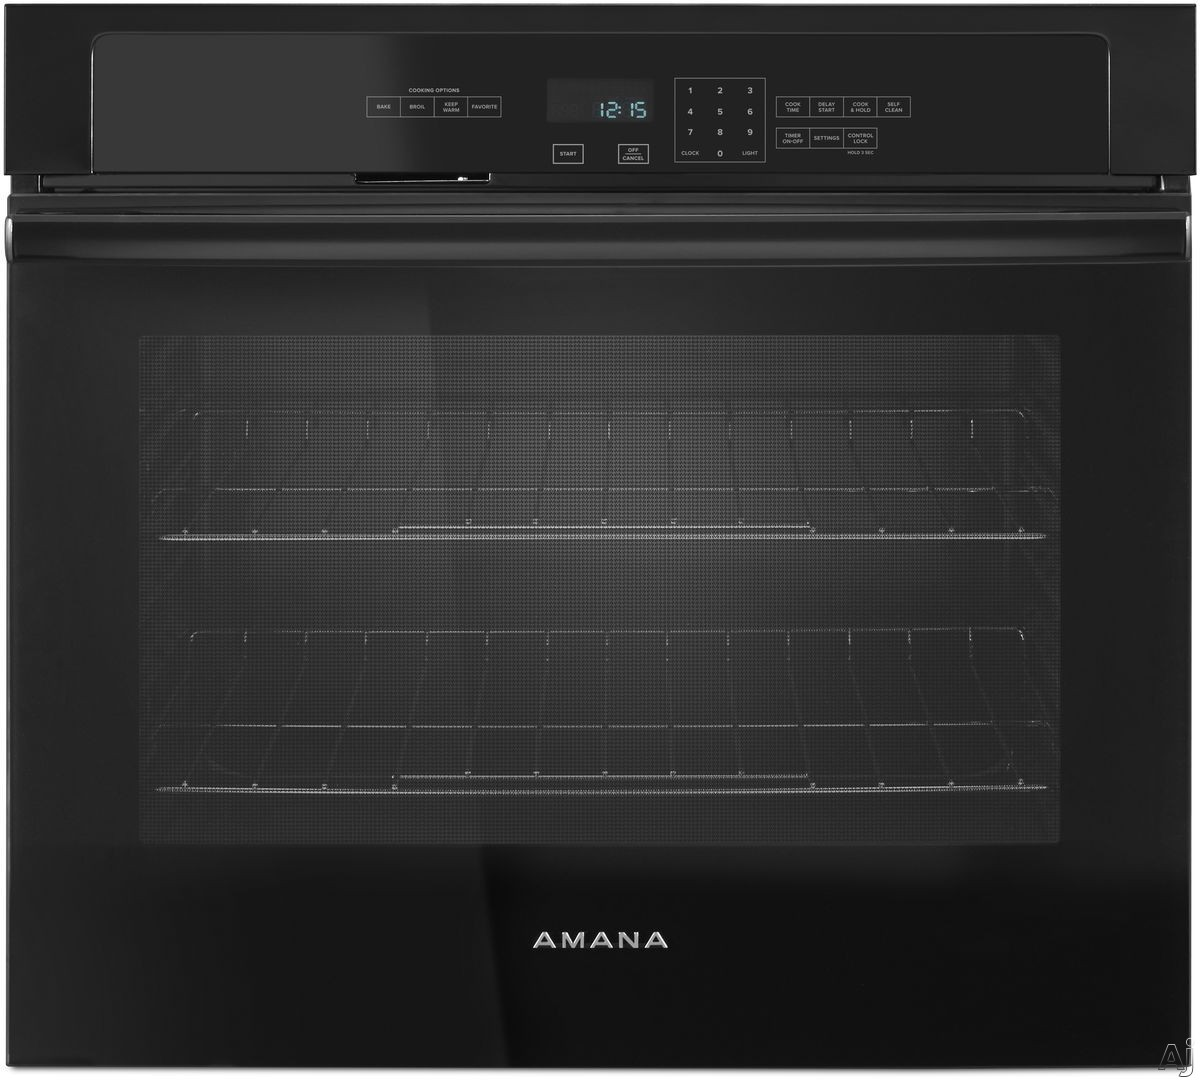 Picture of Amana AWO6317SFB 27 Inch Single Electric Wall Oven with 43 cu ft Capacity Temp Assure Cooking System Hidden Bake Element Incandescent Lighting FIT System Self-Cleaning ADA Compliant and Sabbath Mode Black